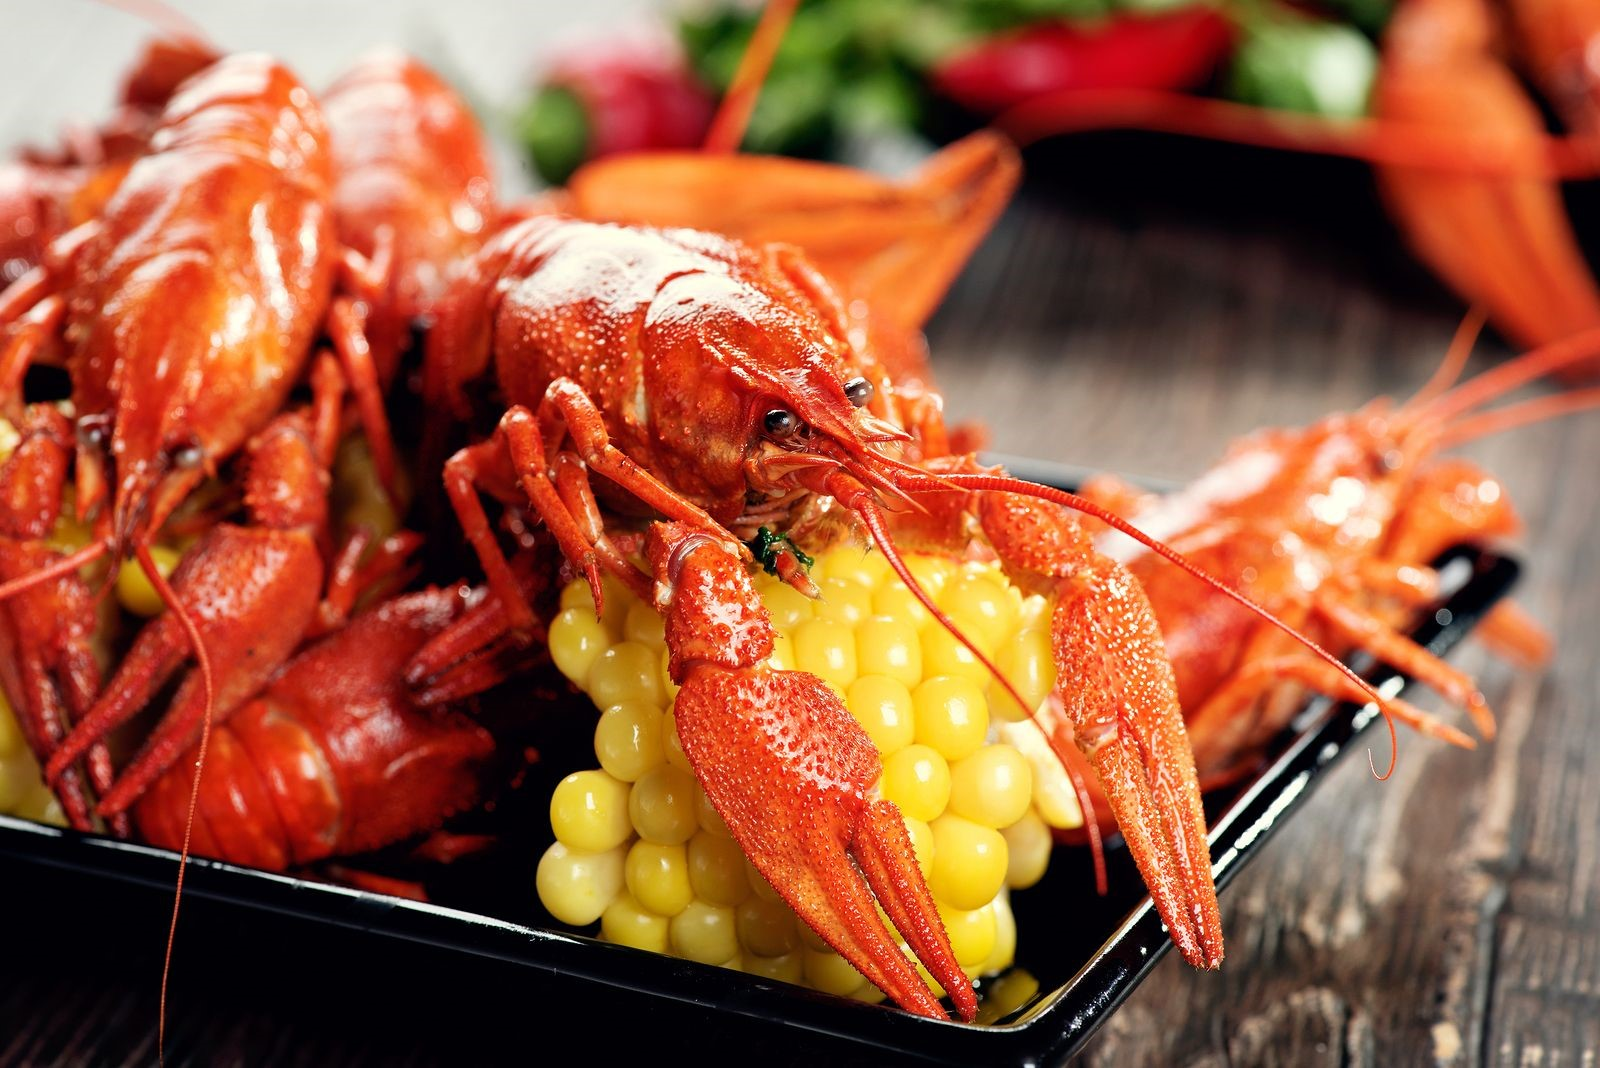 Crawfish in Houston Restaurants are as Interesting as They are Tasty